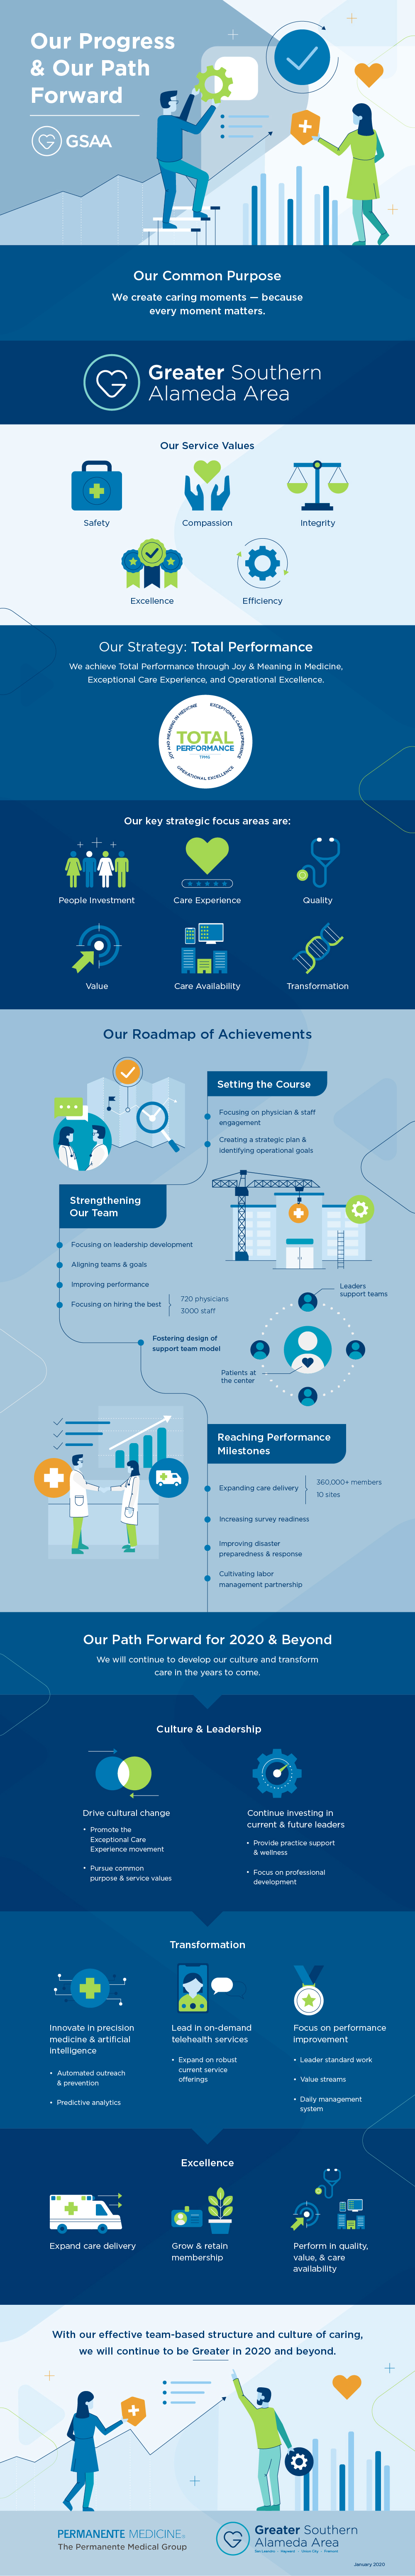 Healthcare branding strategy infographic with logo design